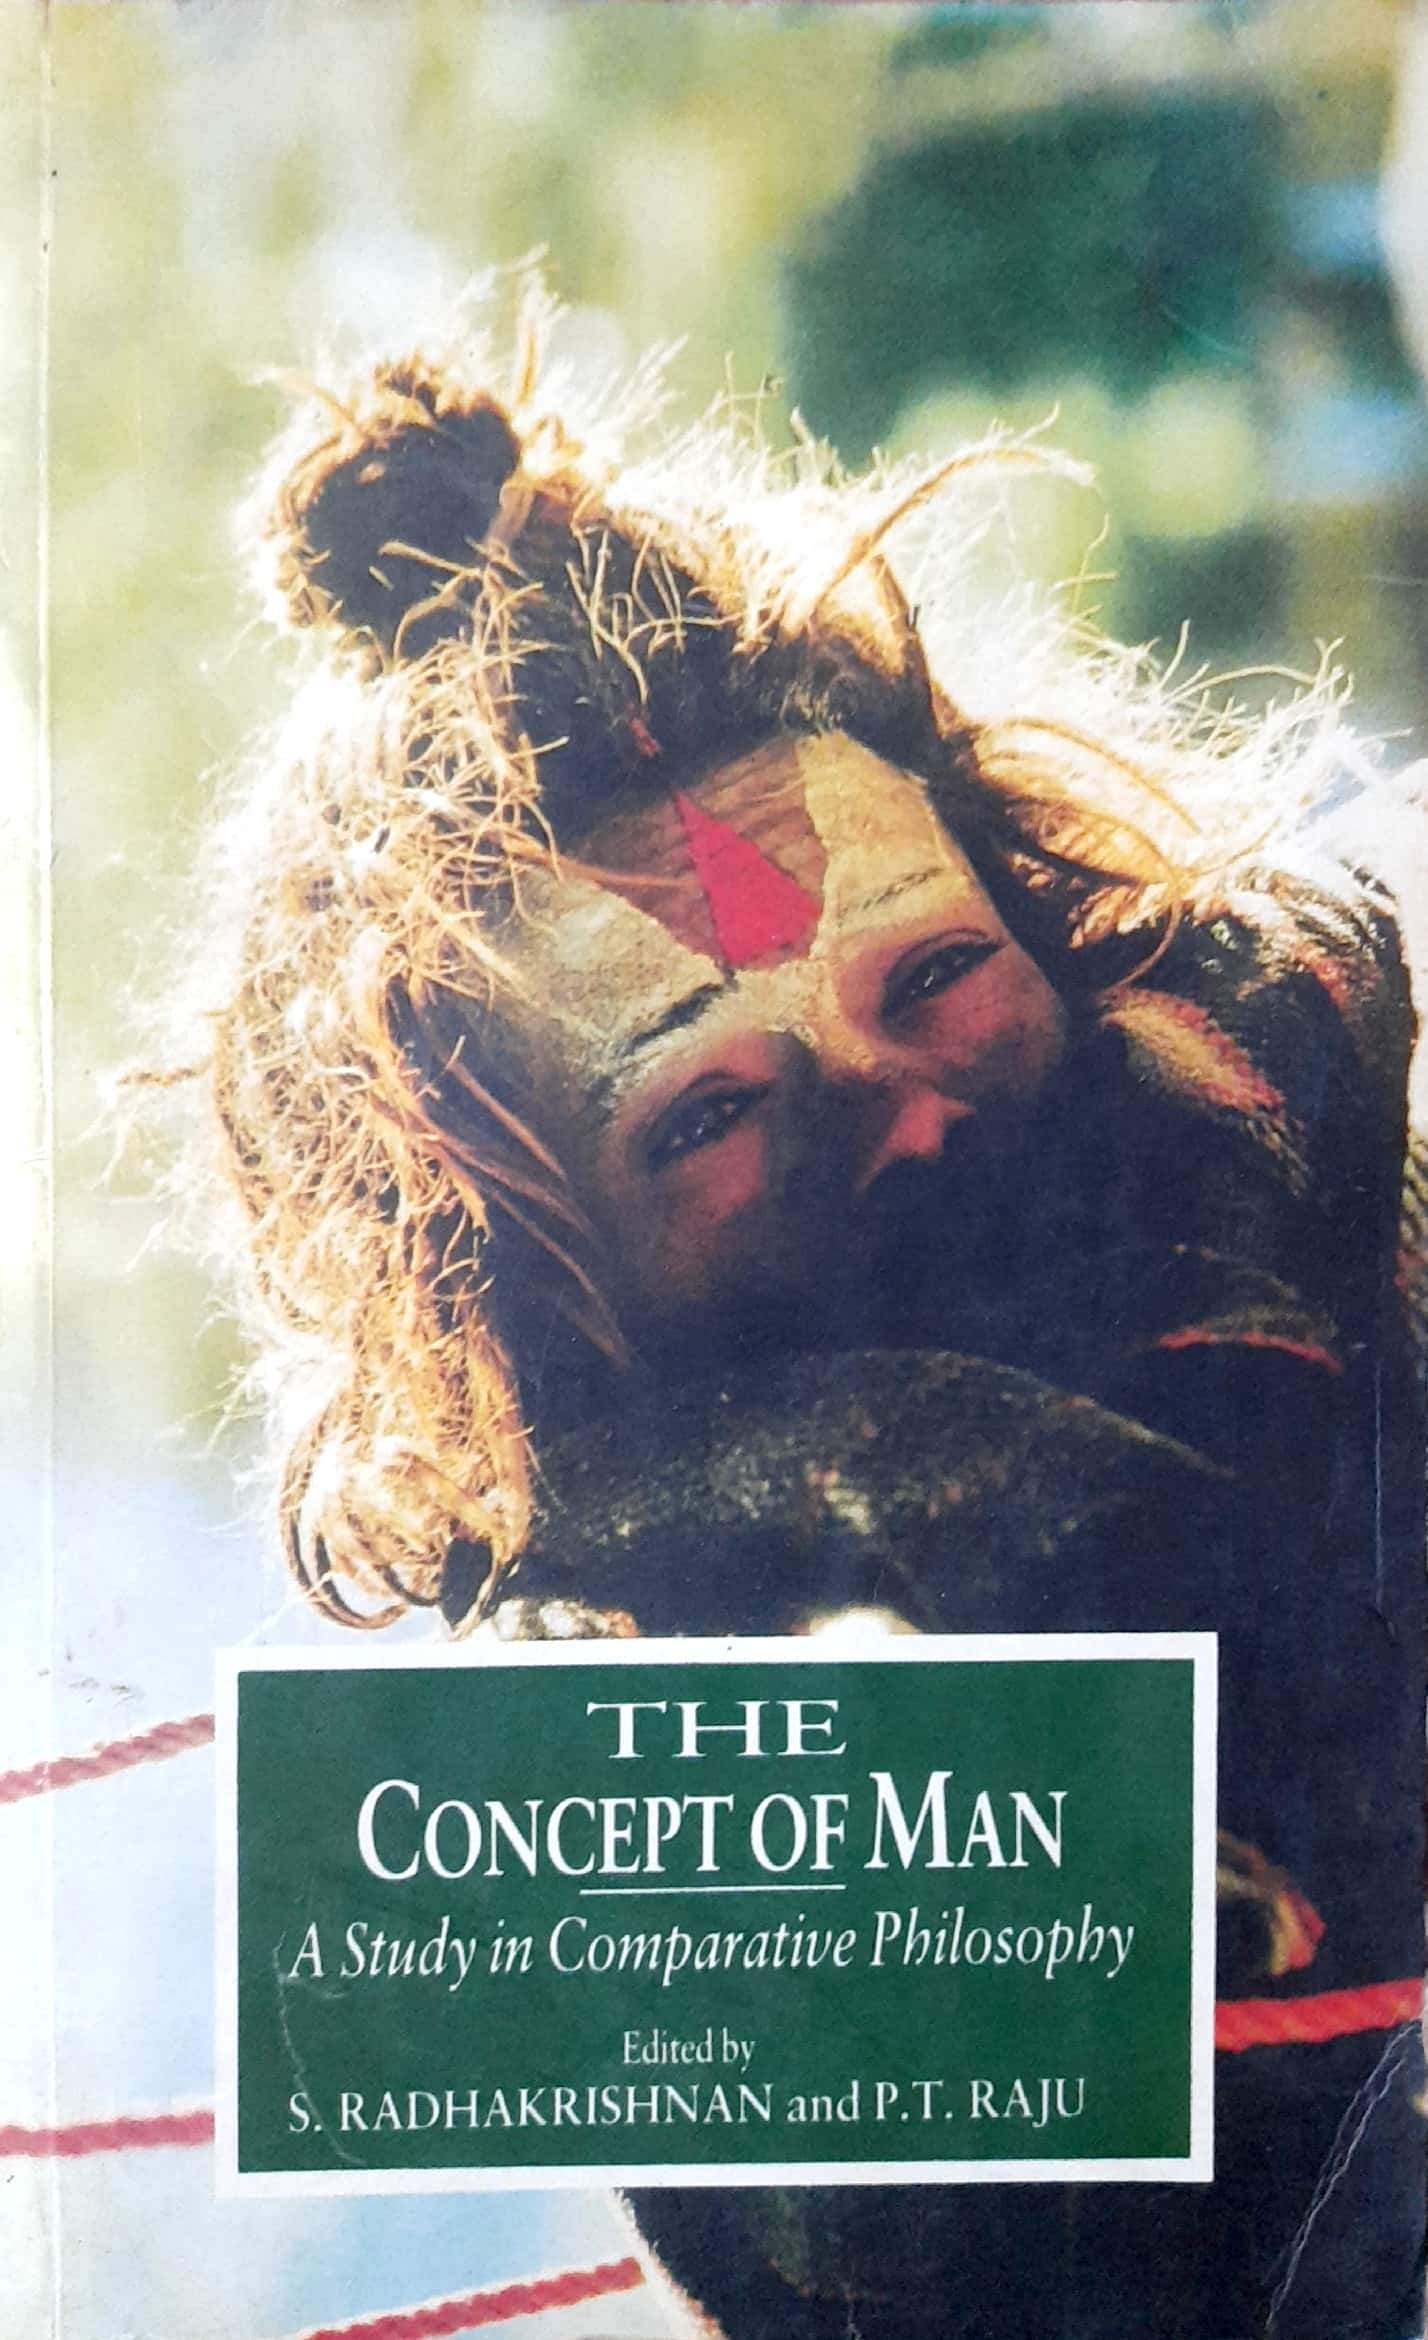 The Concept of Man: A Study in Comparative Philosophy